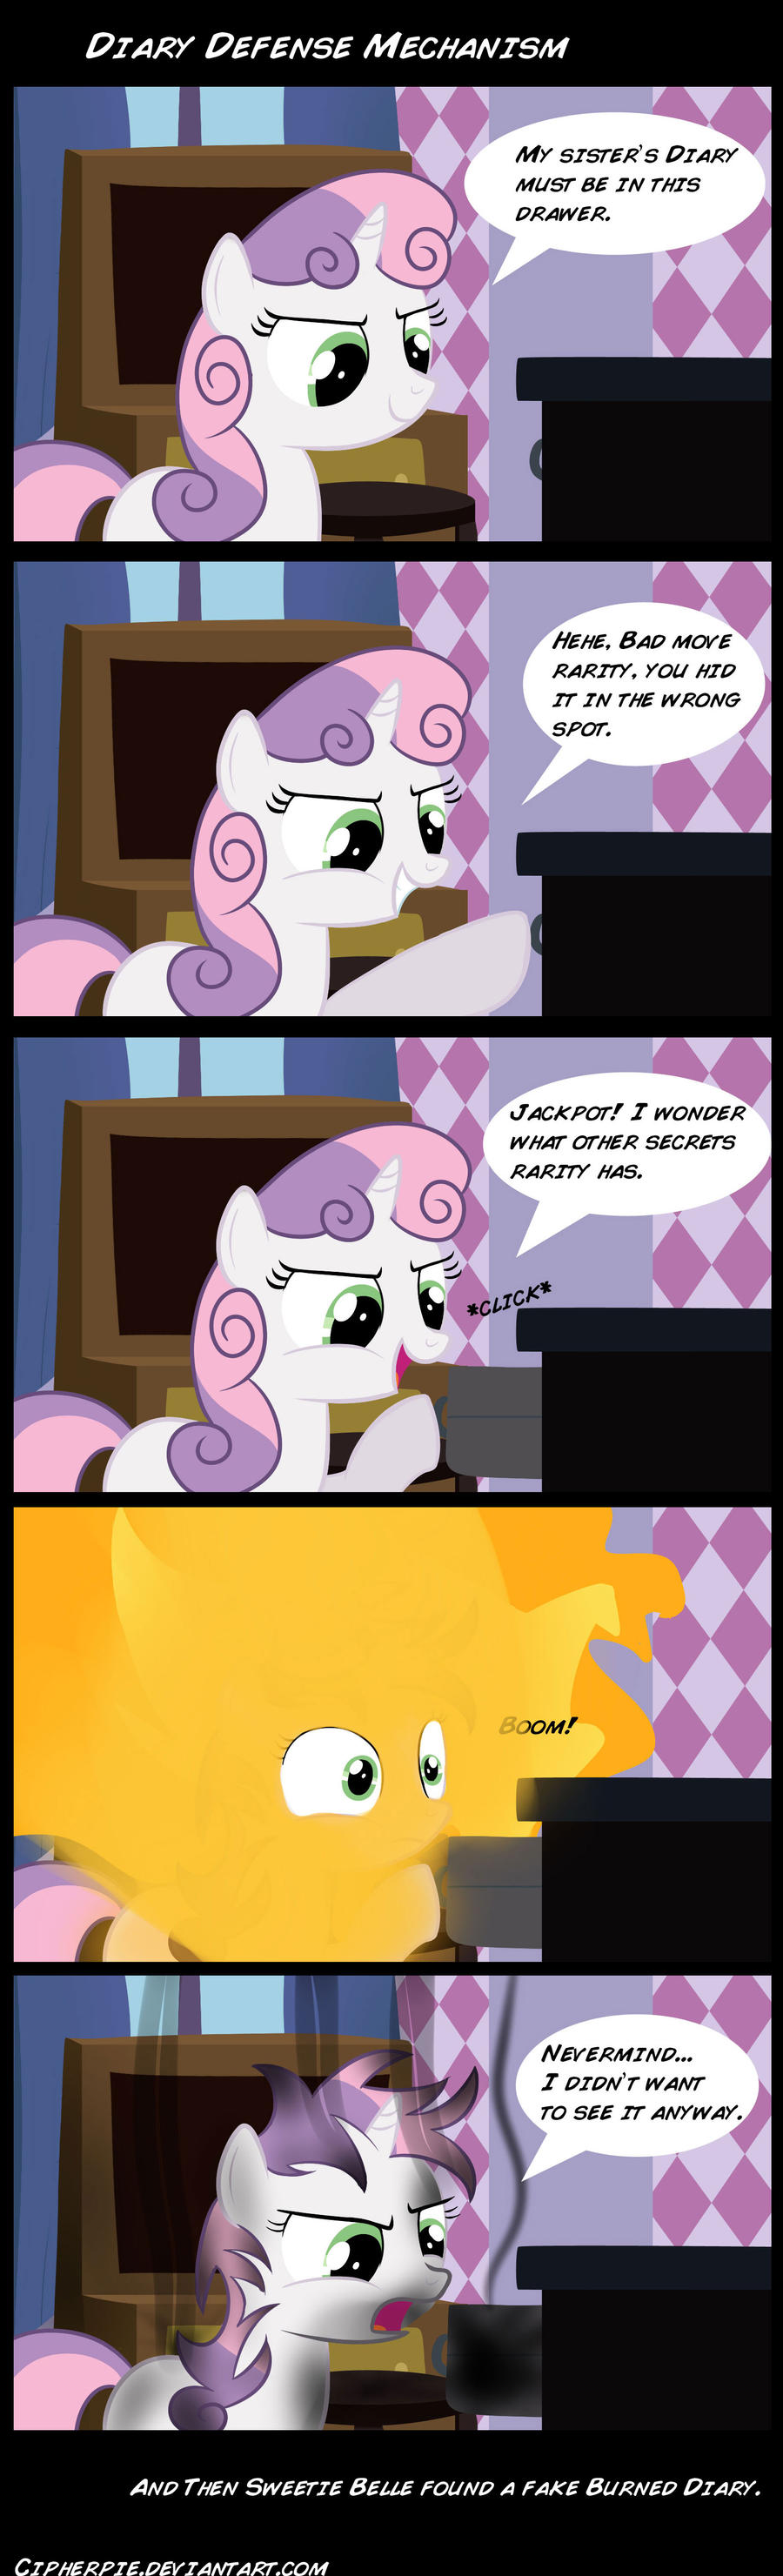 Diary Defense Mechanism by cipherpie